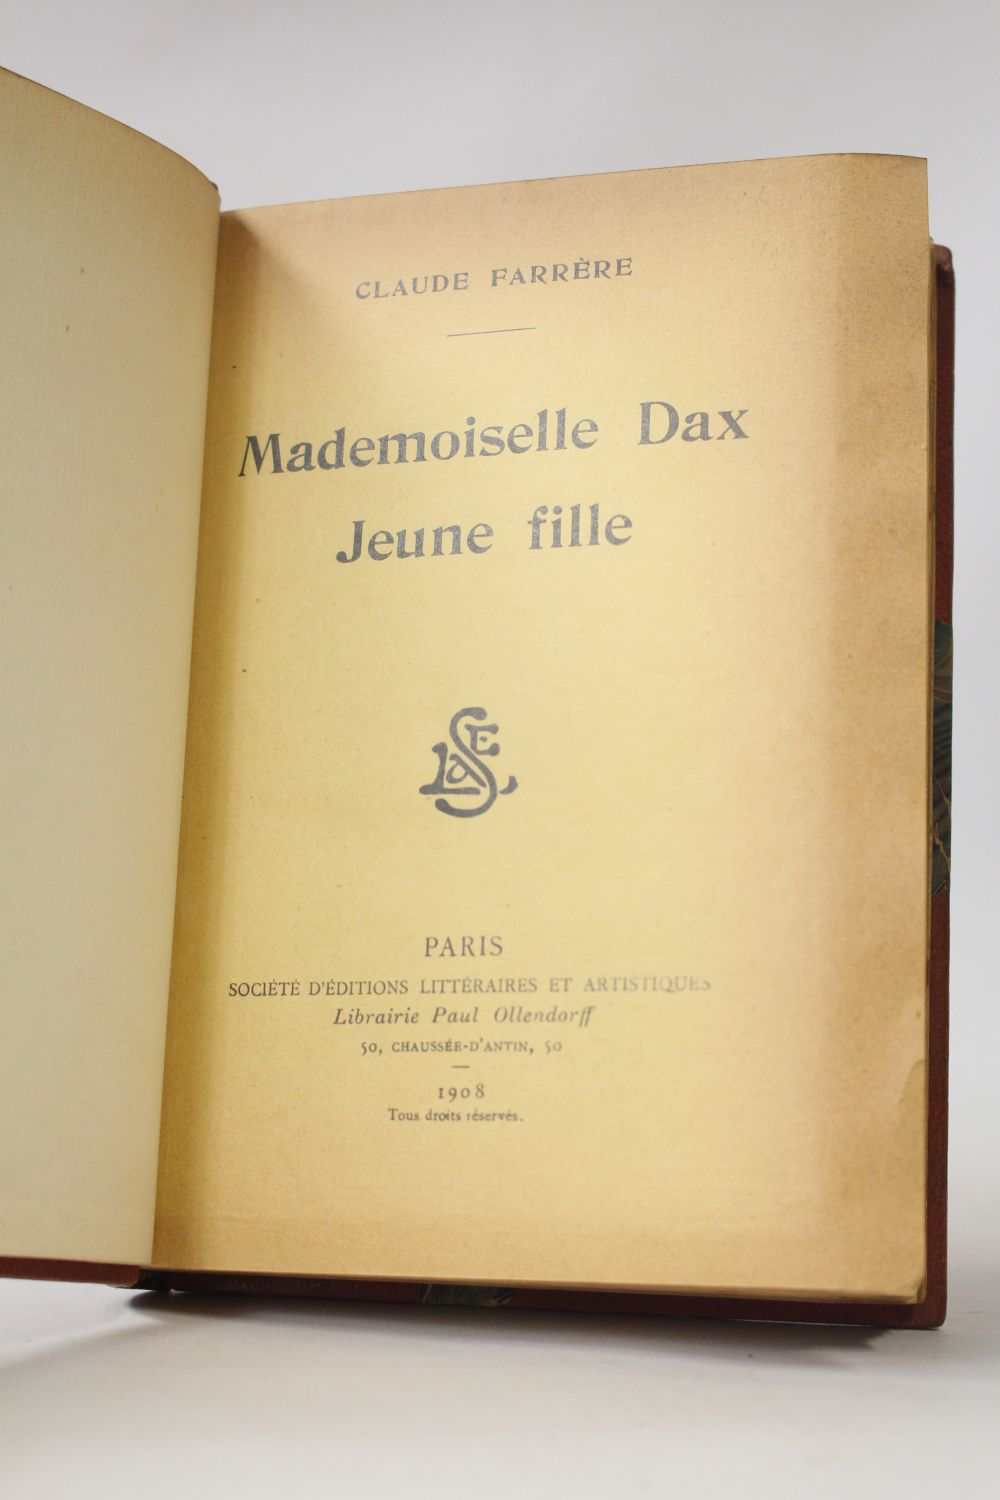 FARRERE : Mademoiselle Dax jeune fille - First edition - Edition